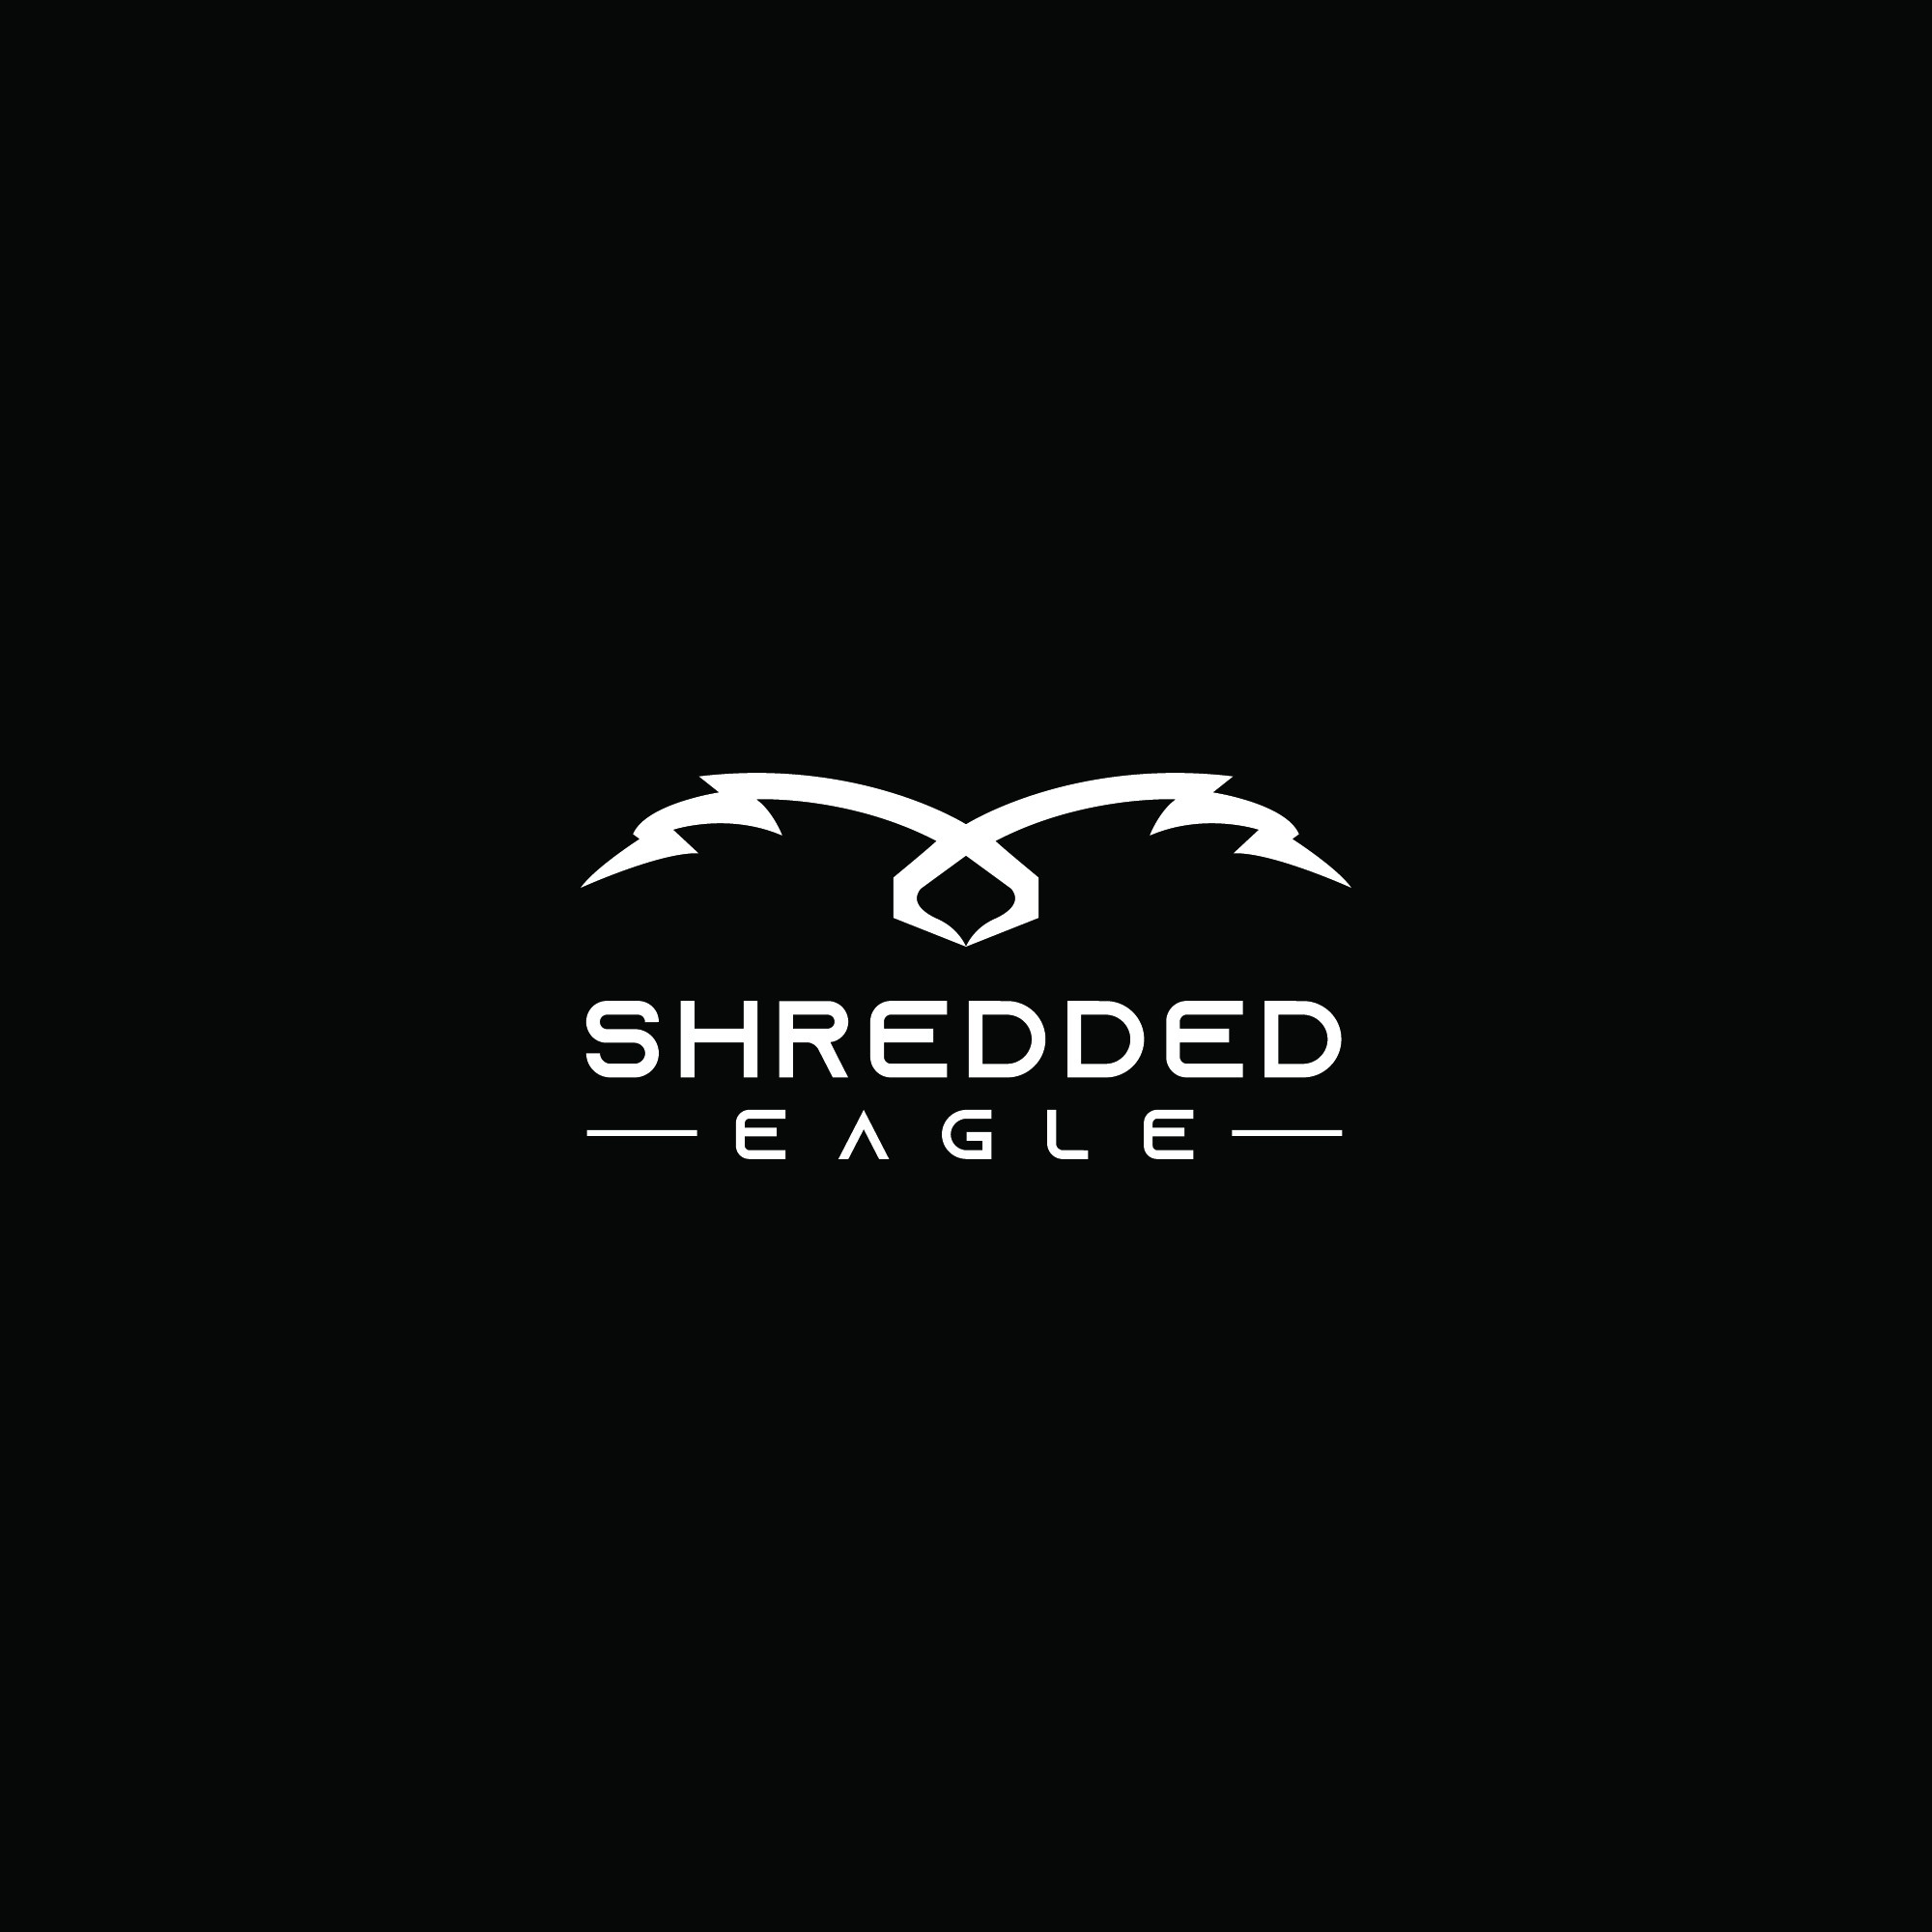 Shredded Eagle Logo to Appeal to Men and Women